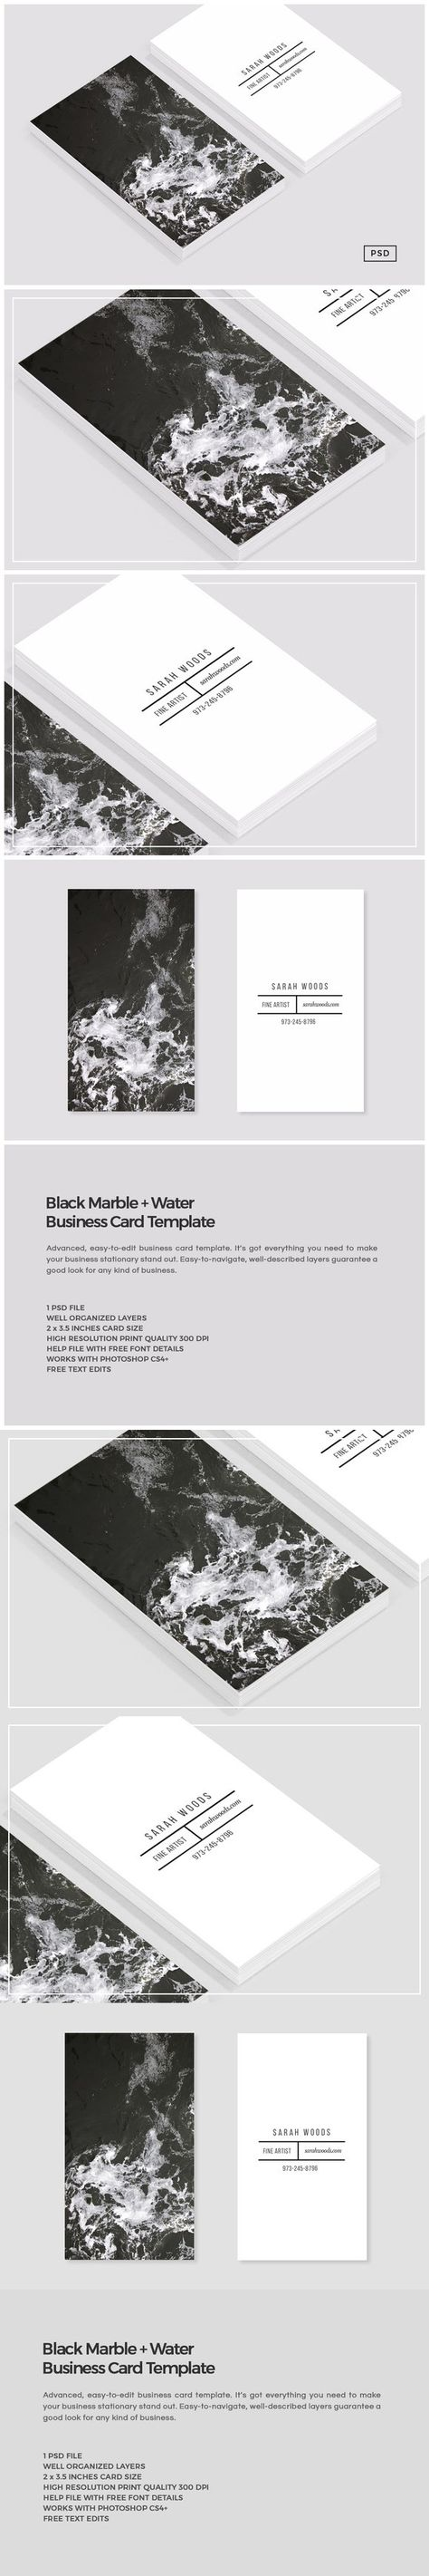 Businesscard design from stay studio download https businesscard design from stay studio download httpscreativemarketstaystudio683339 lily business carduzsoltczigler pinterest reheart Images